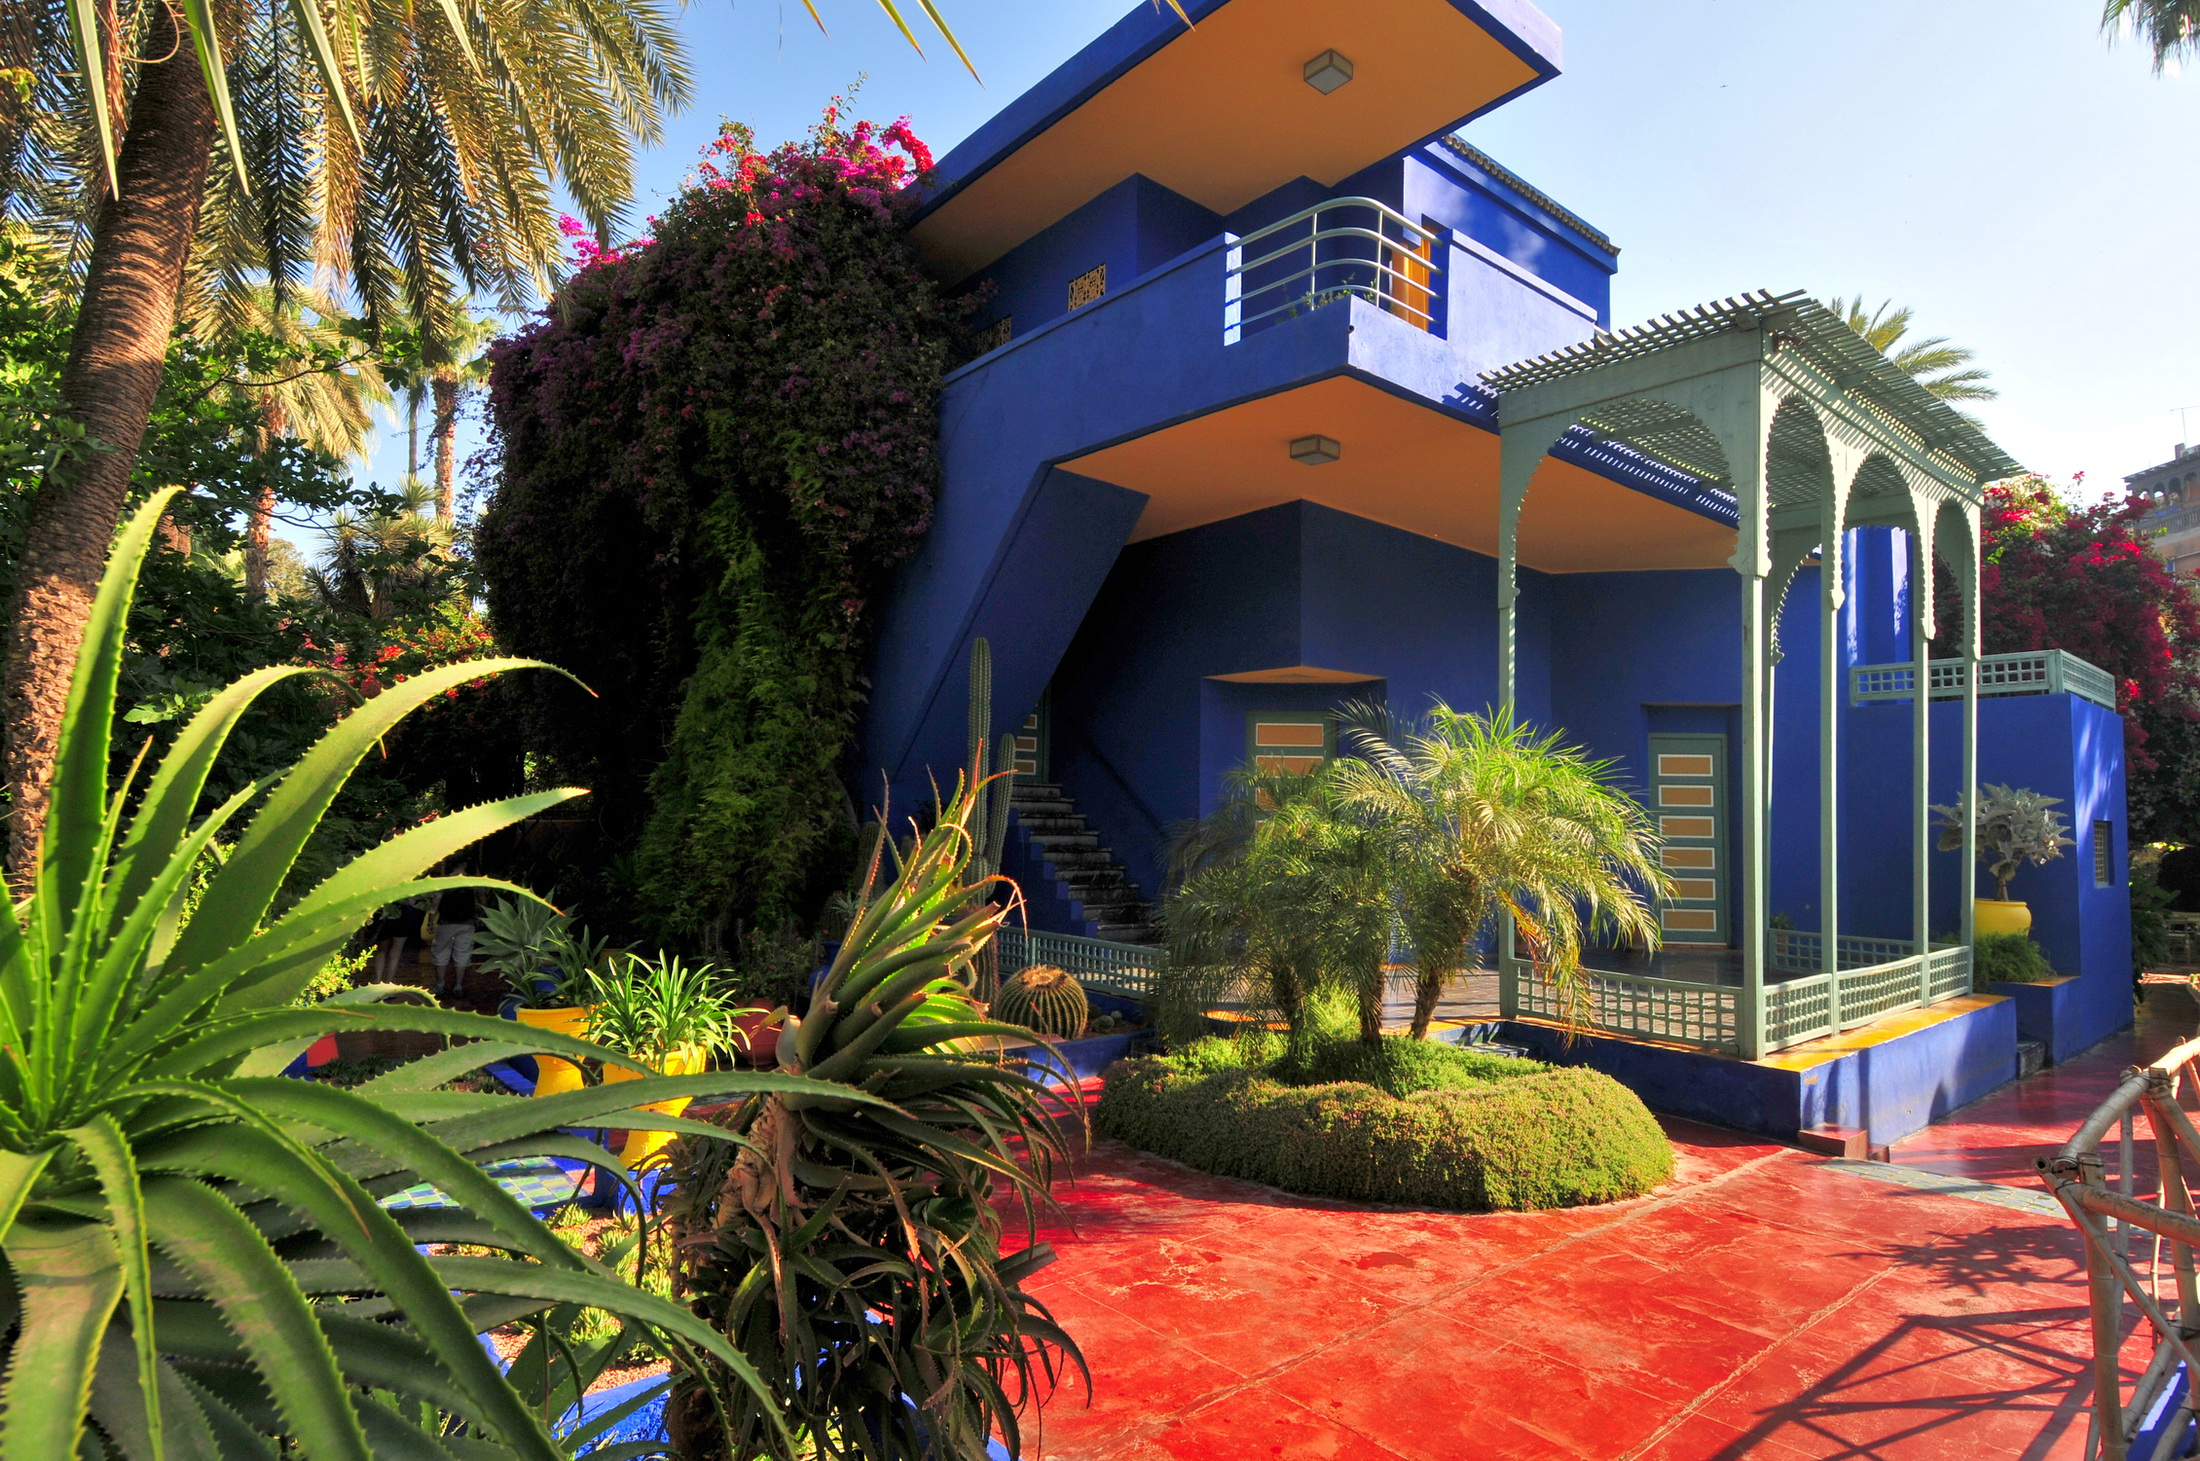 Morocco Marrakech Jardin Majorelle Hd Wallpaper Background Image